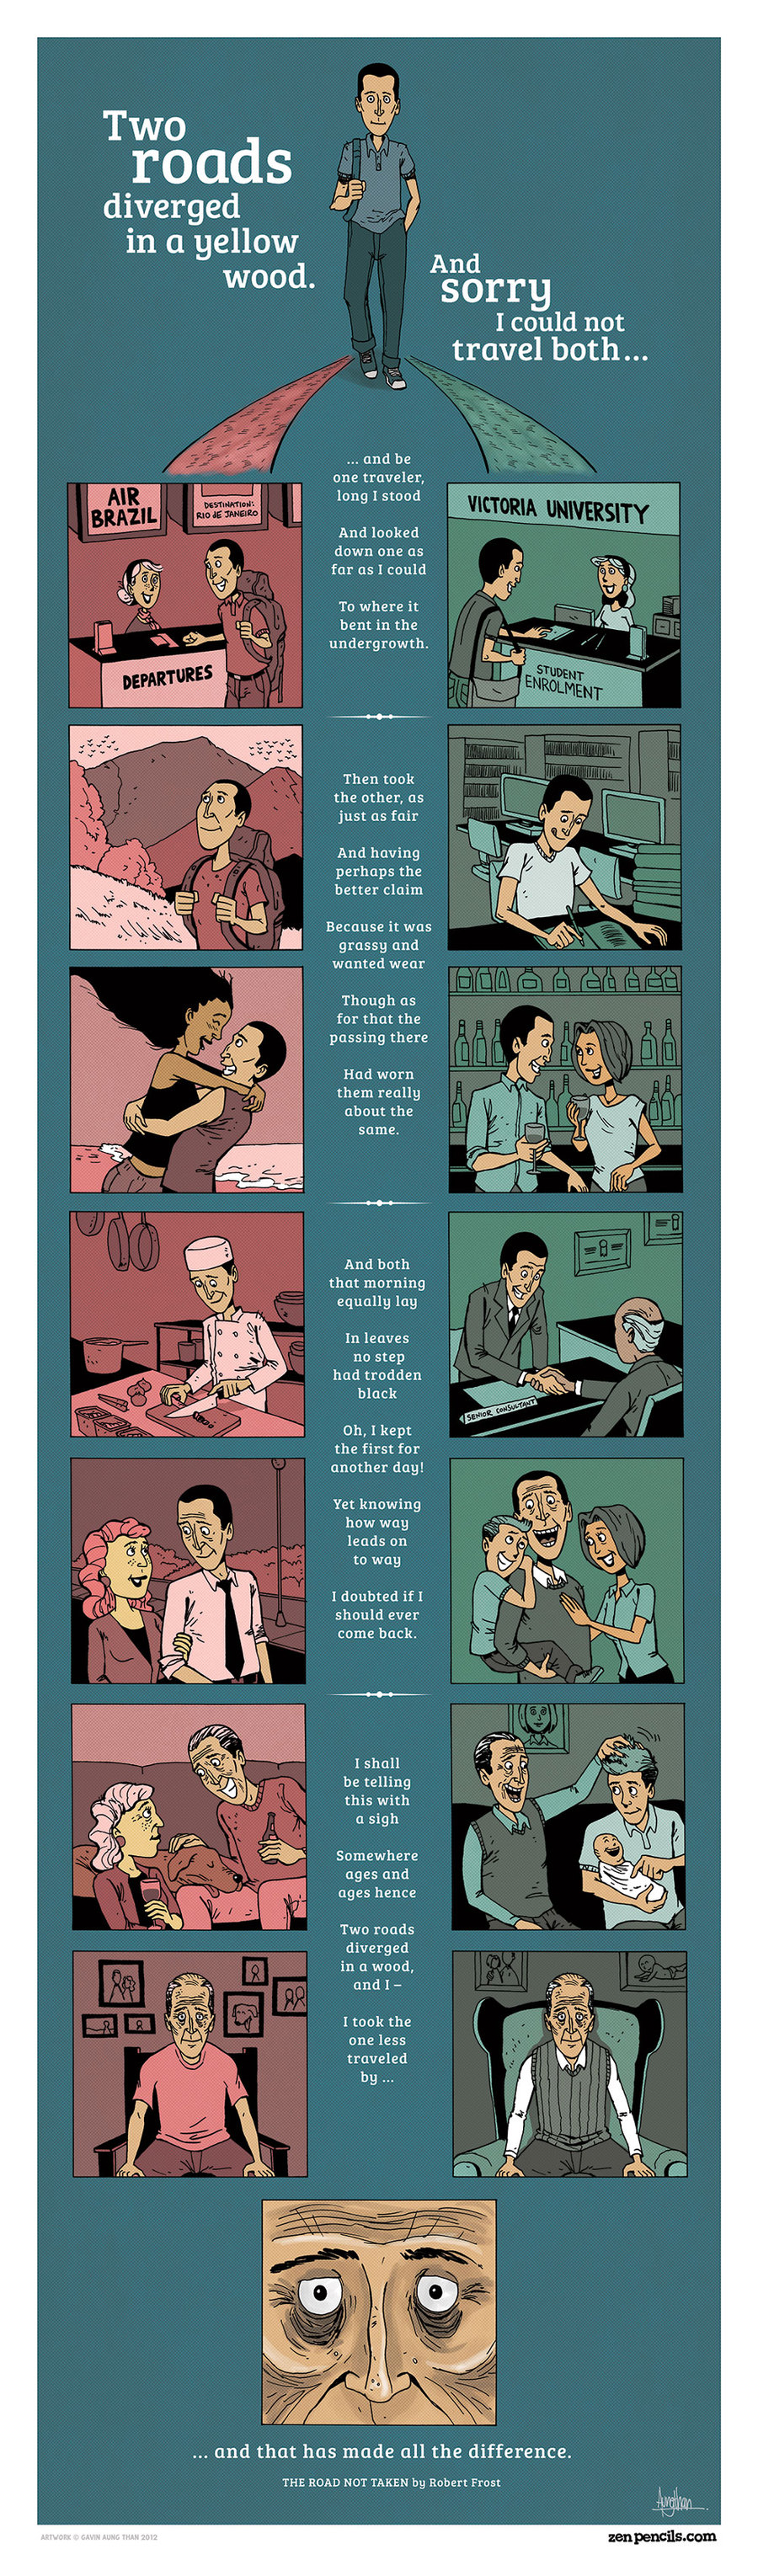 Zen Pencils for Oct 21, 2013 Comic Strip